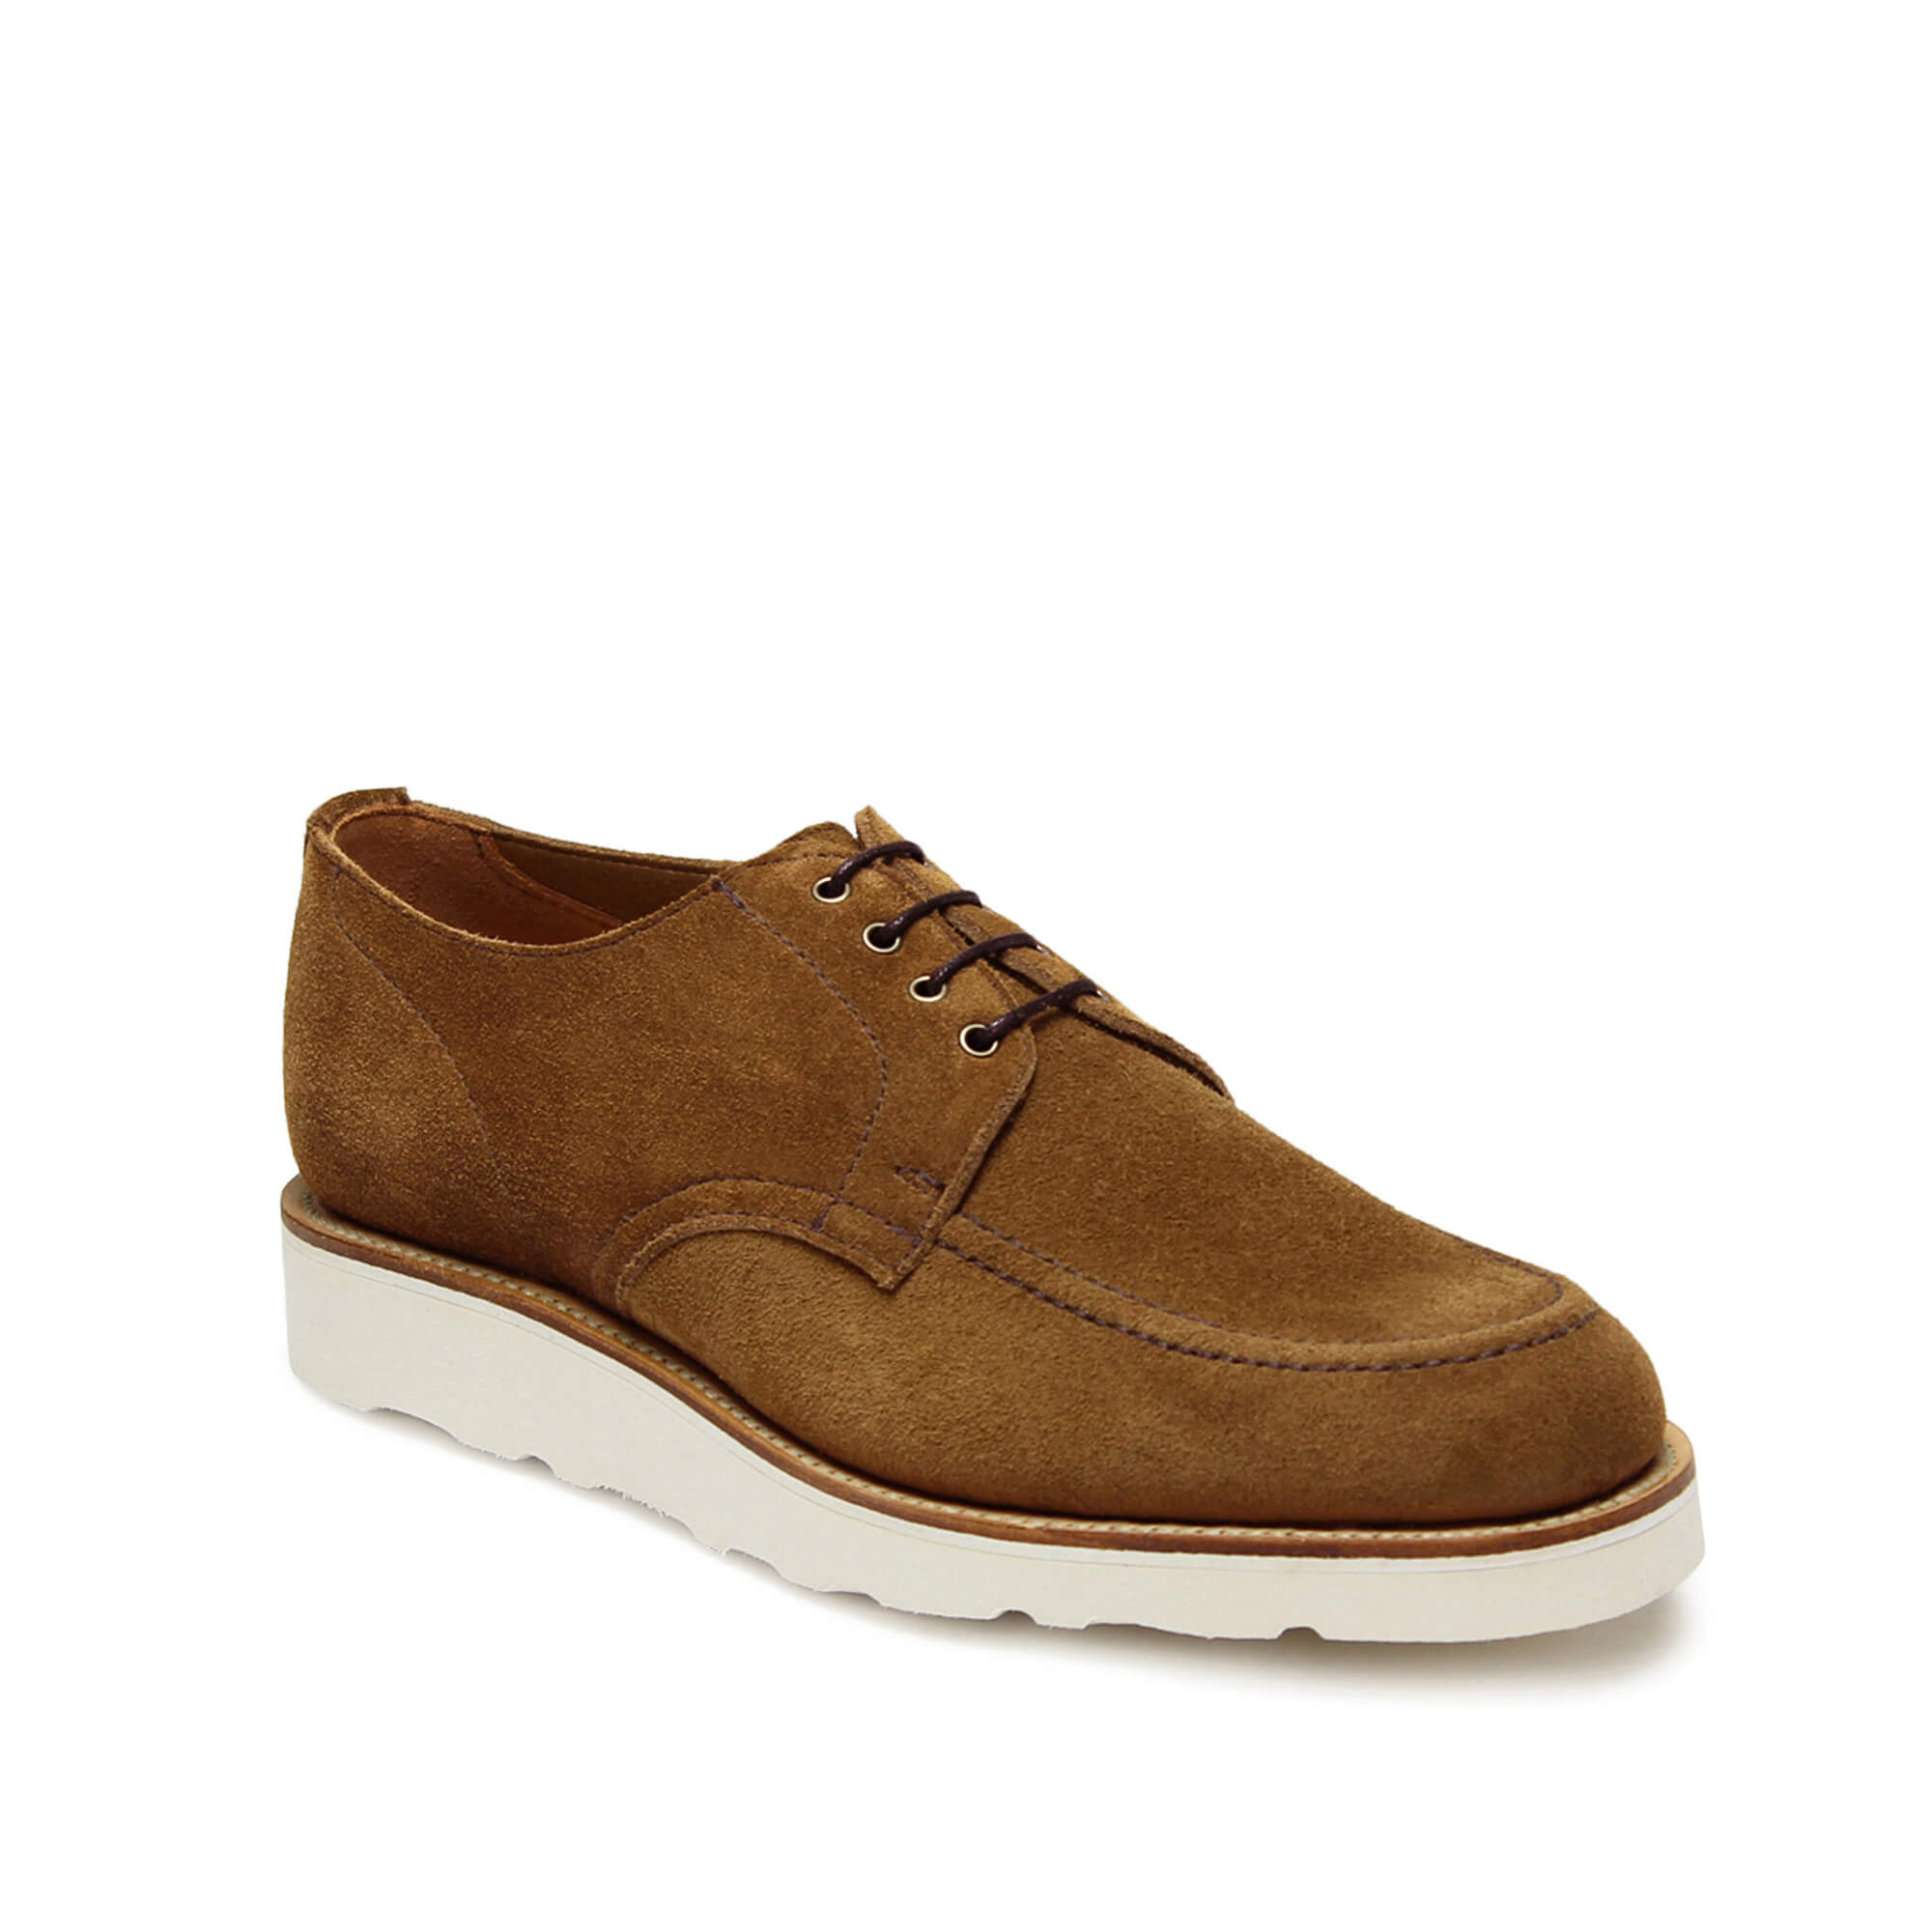 Sanders Men's Henry Suede Lace-Up Shoes 2132/TTS